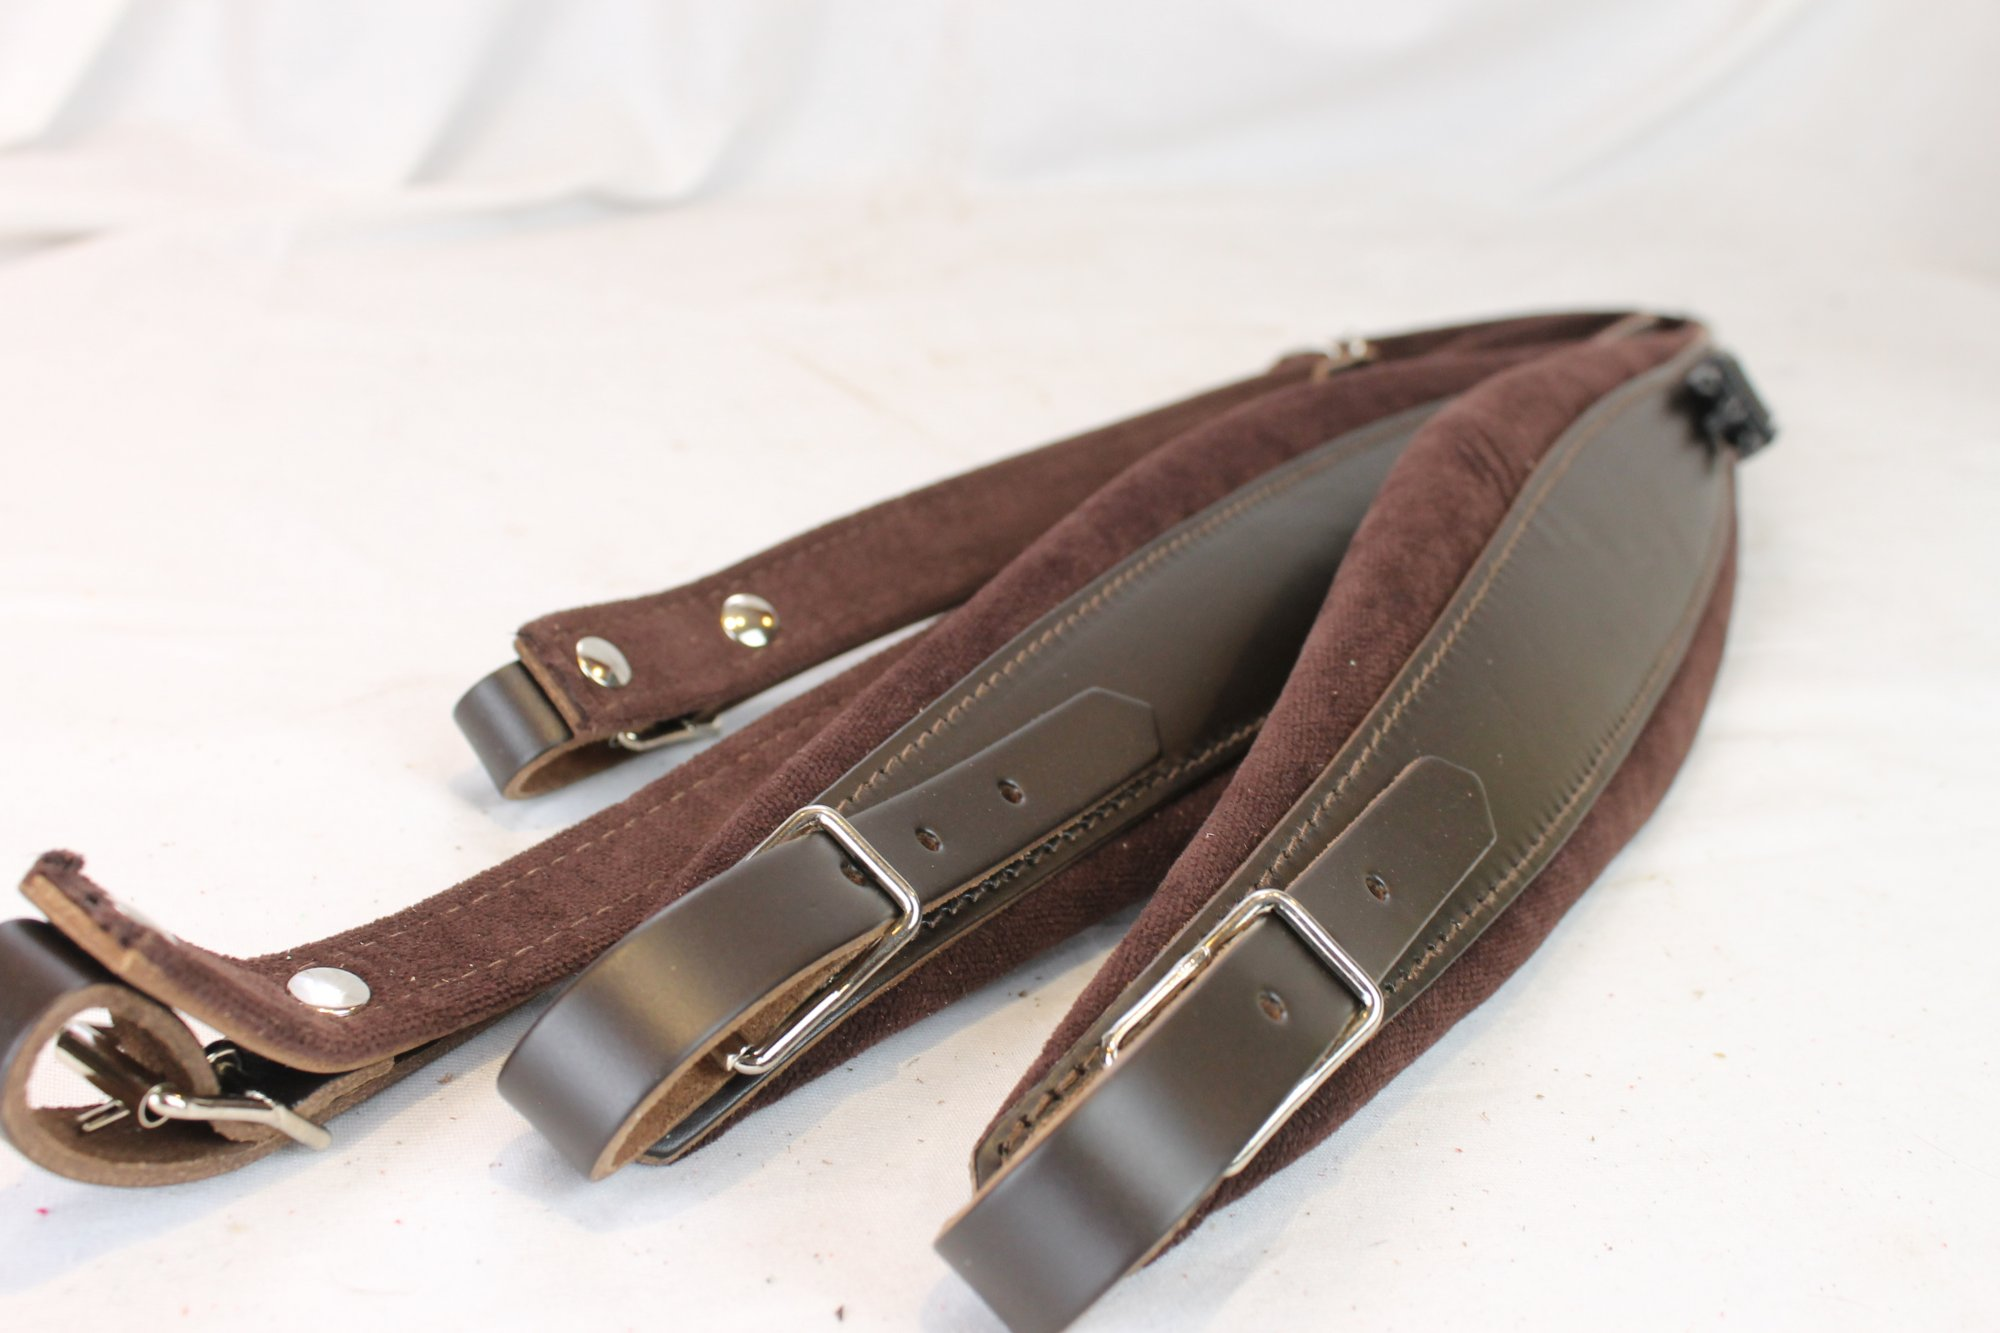 New Brown Leather Velour Fuselli Accordion Shoulder Straps Width (9cm / 3.5in) Length (105~123cm / 41.3~48.4in)